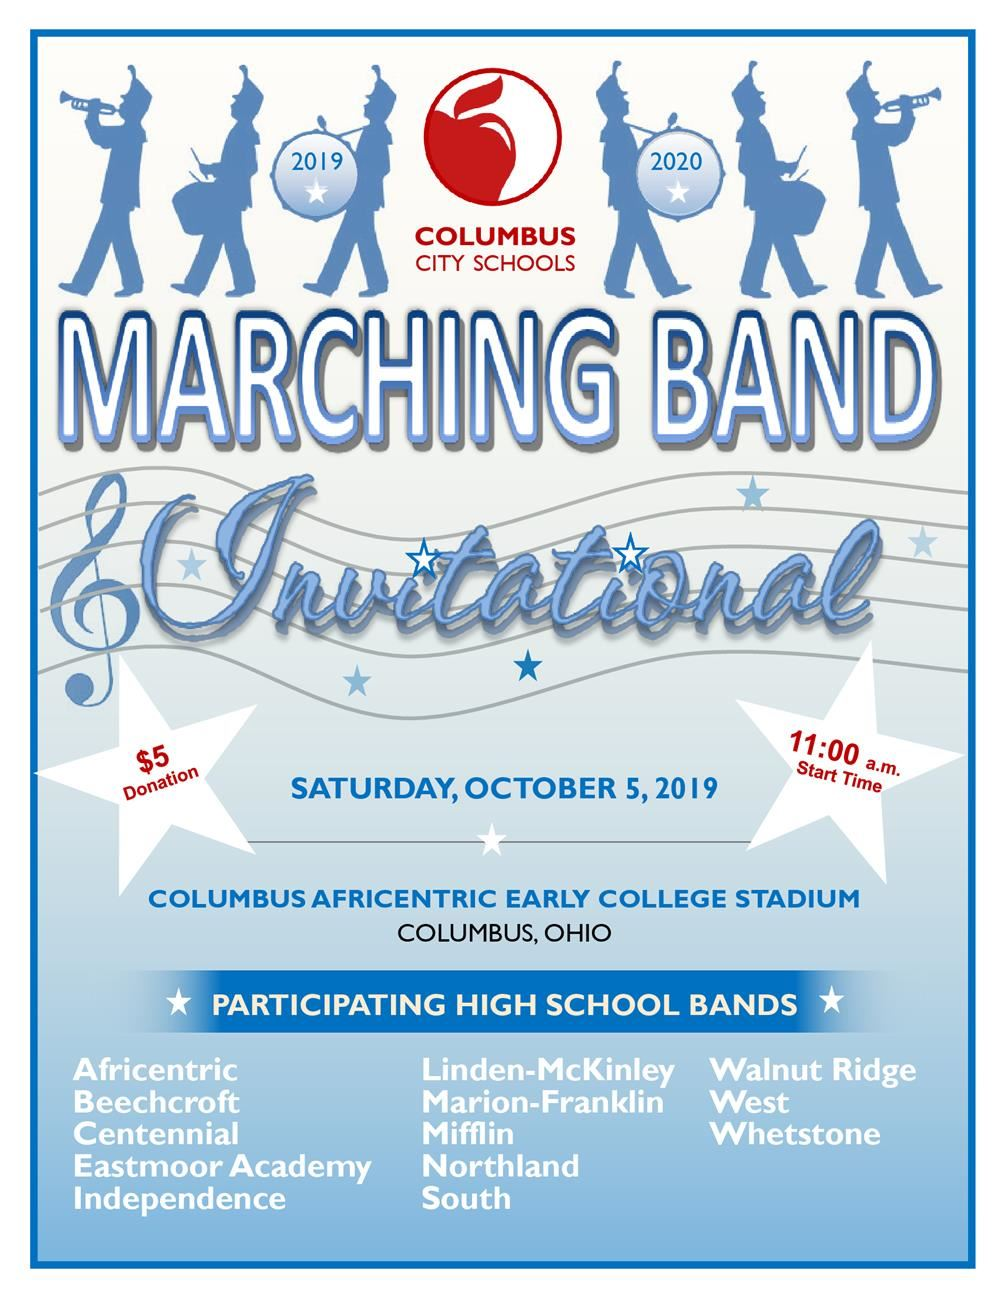 Marching Band Invitational